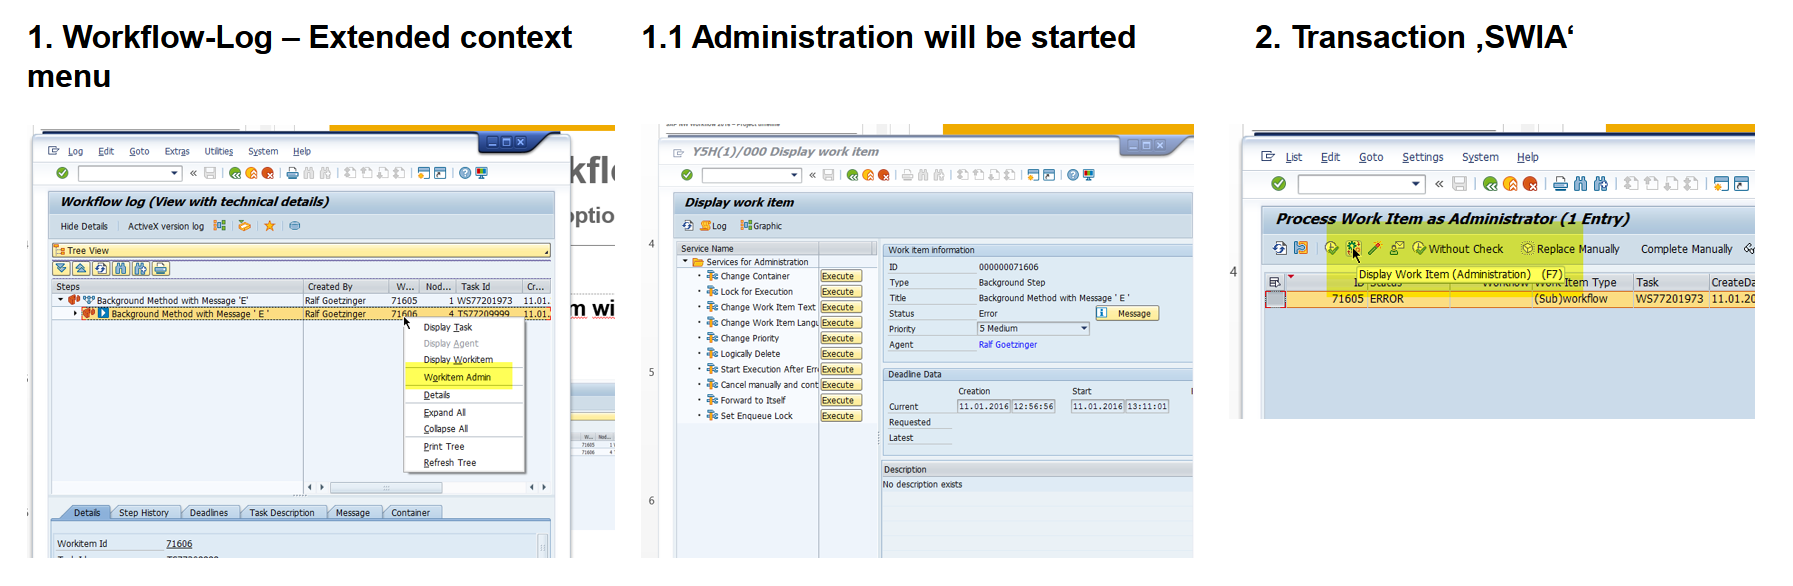 Shortcut to the admin options from the workflow log/swia/task display